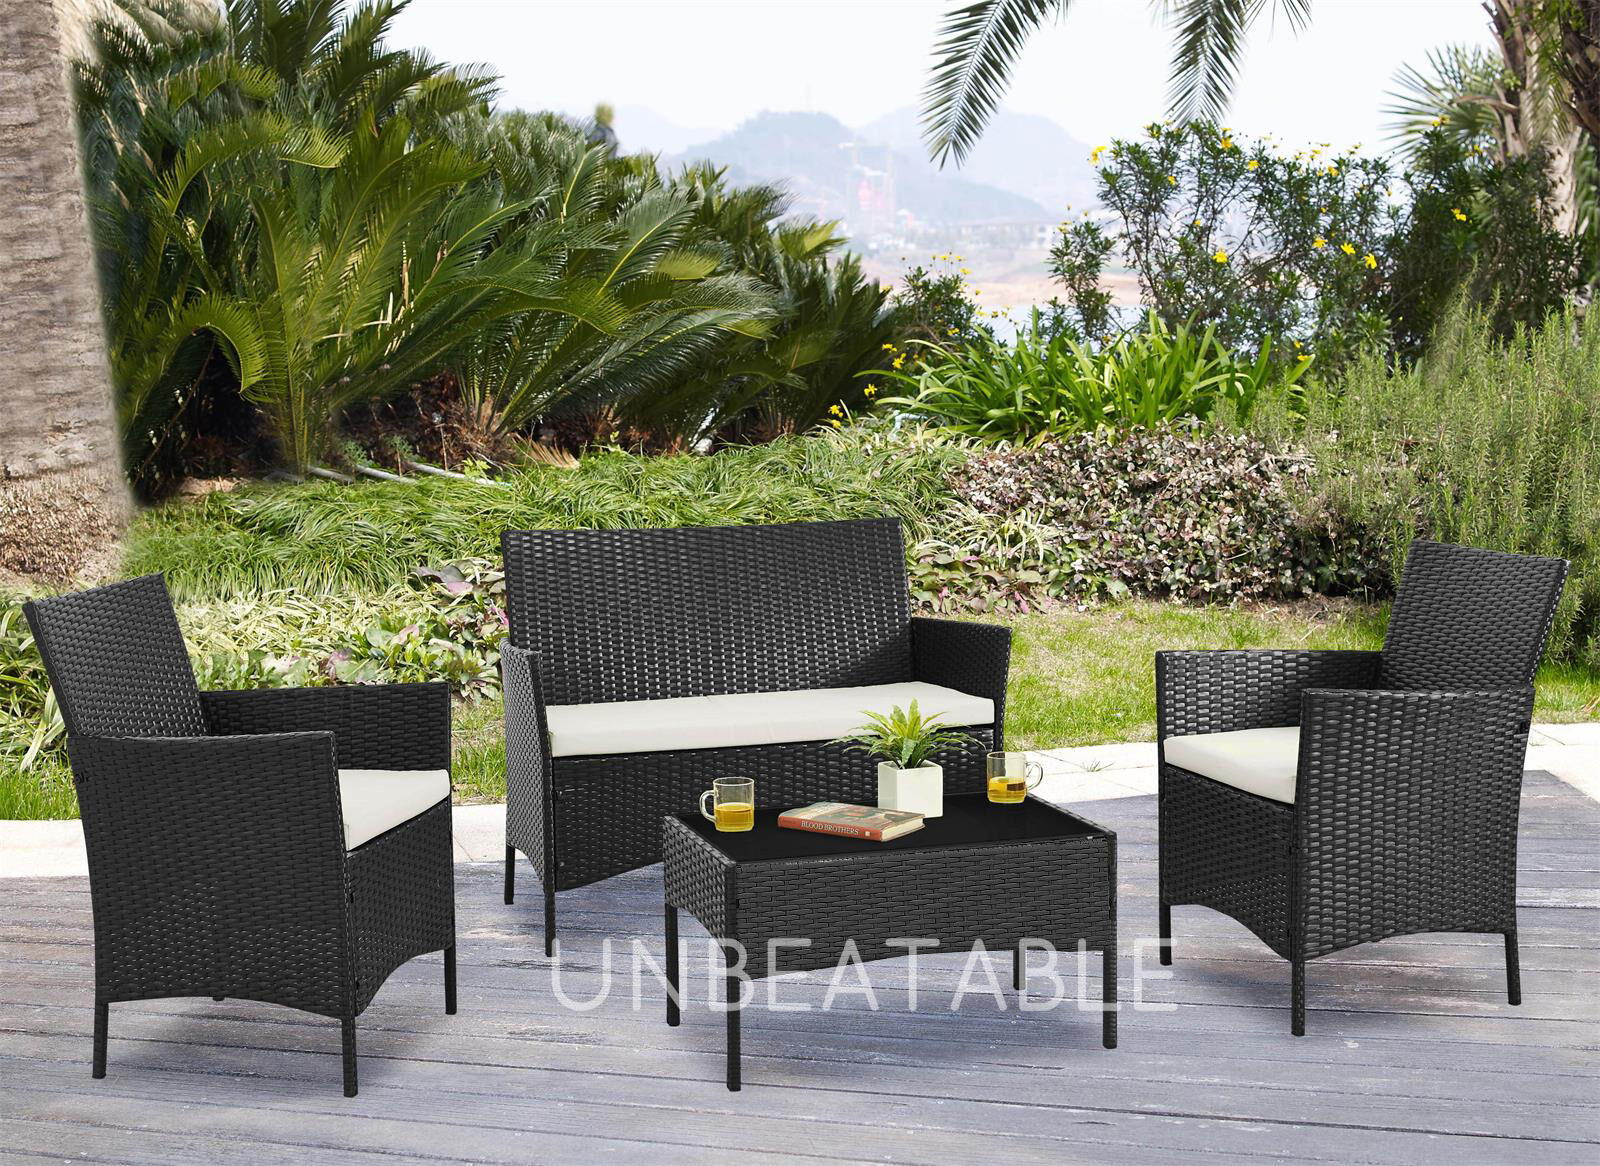 Garden Furniture - Garden Furniture Set Conservatory Patio Outdoor Table Chairs Sofa Cover Option